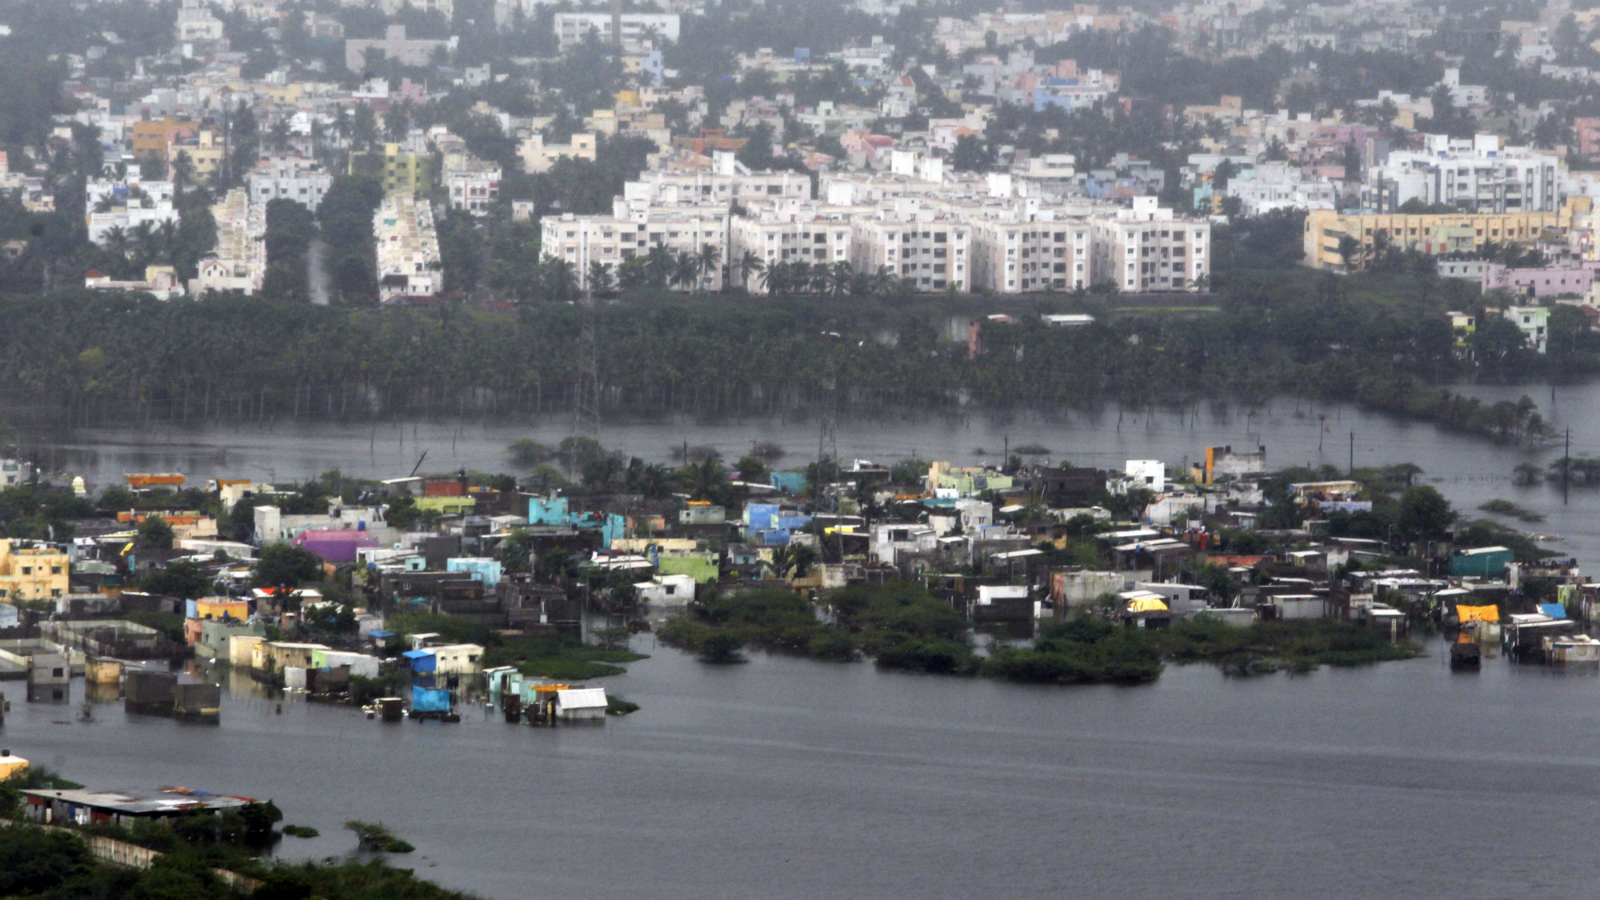 Residential areas are seen inundated by floodwaters in Chennai, India, Saturday, Dec. 5, 2015. Although floodwaters have begun to recede, vast swaths of Chennai and neighboring districts were still under 2 1/2 to 3 meters (8 to 10 feet) of water, with tens of thousands of people in state-run relief camps.